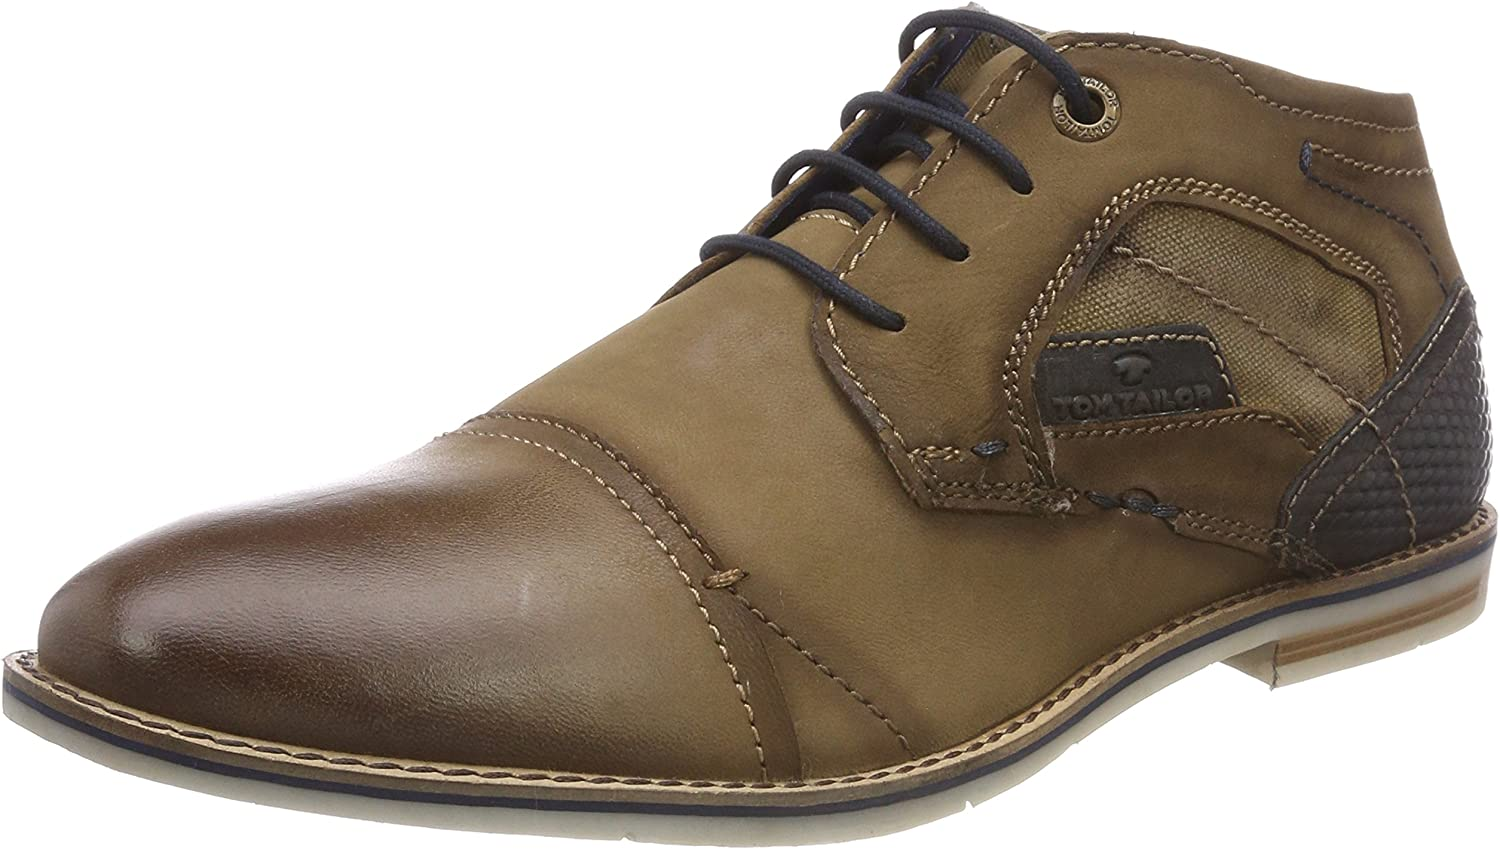 TOM TAILOR 4889006 - Botines Hombre